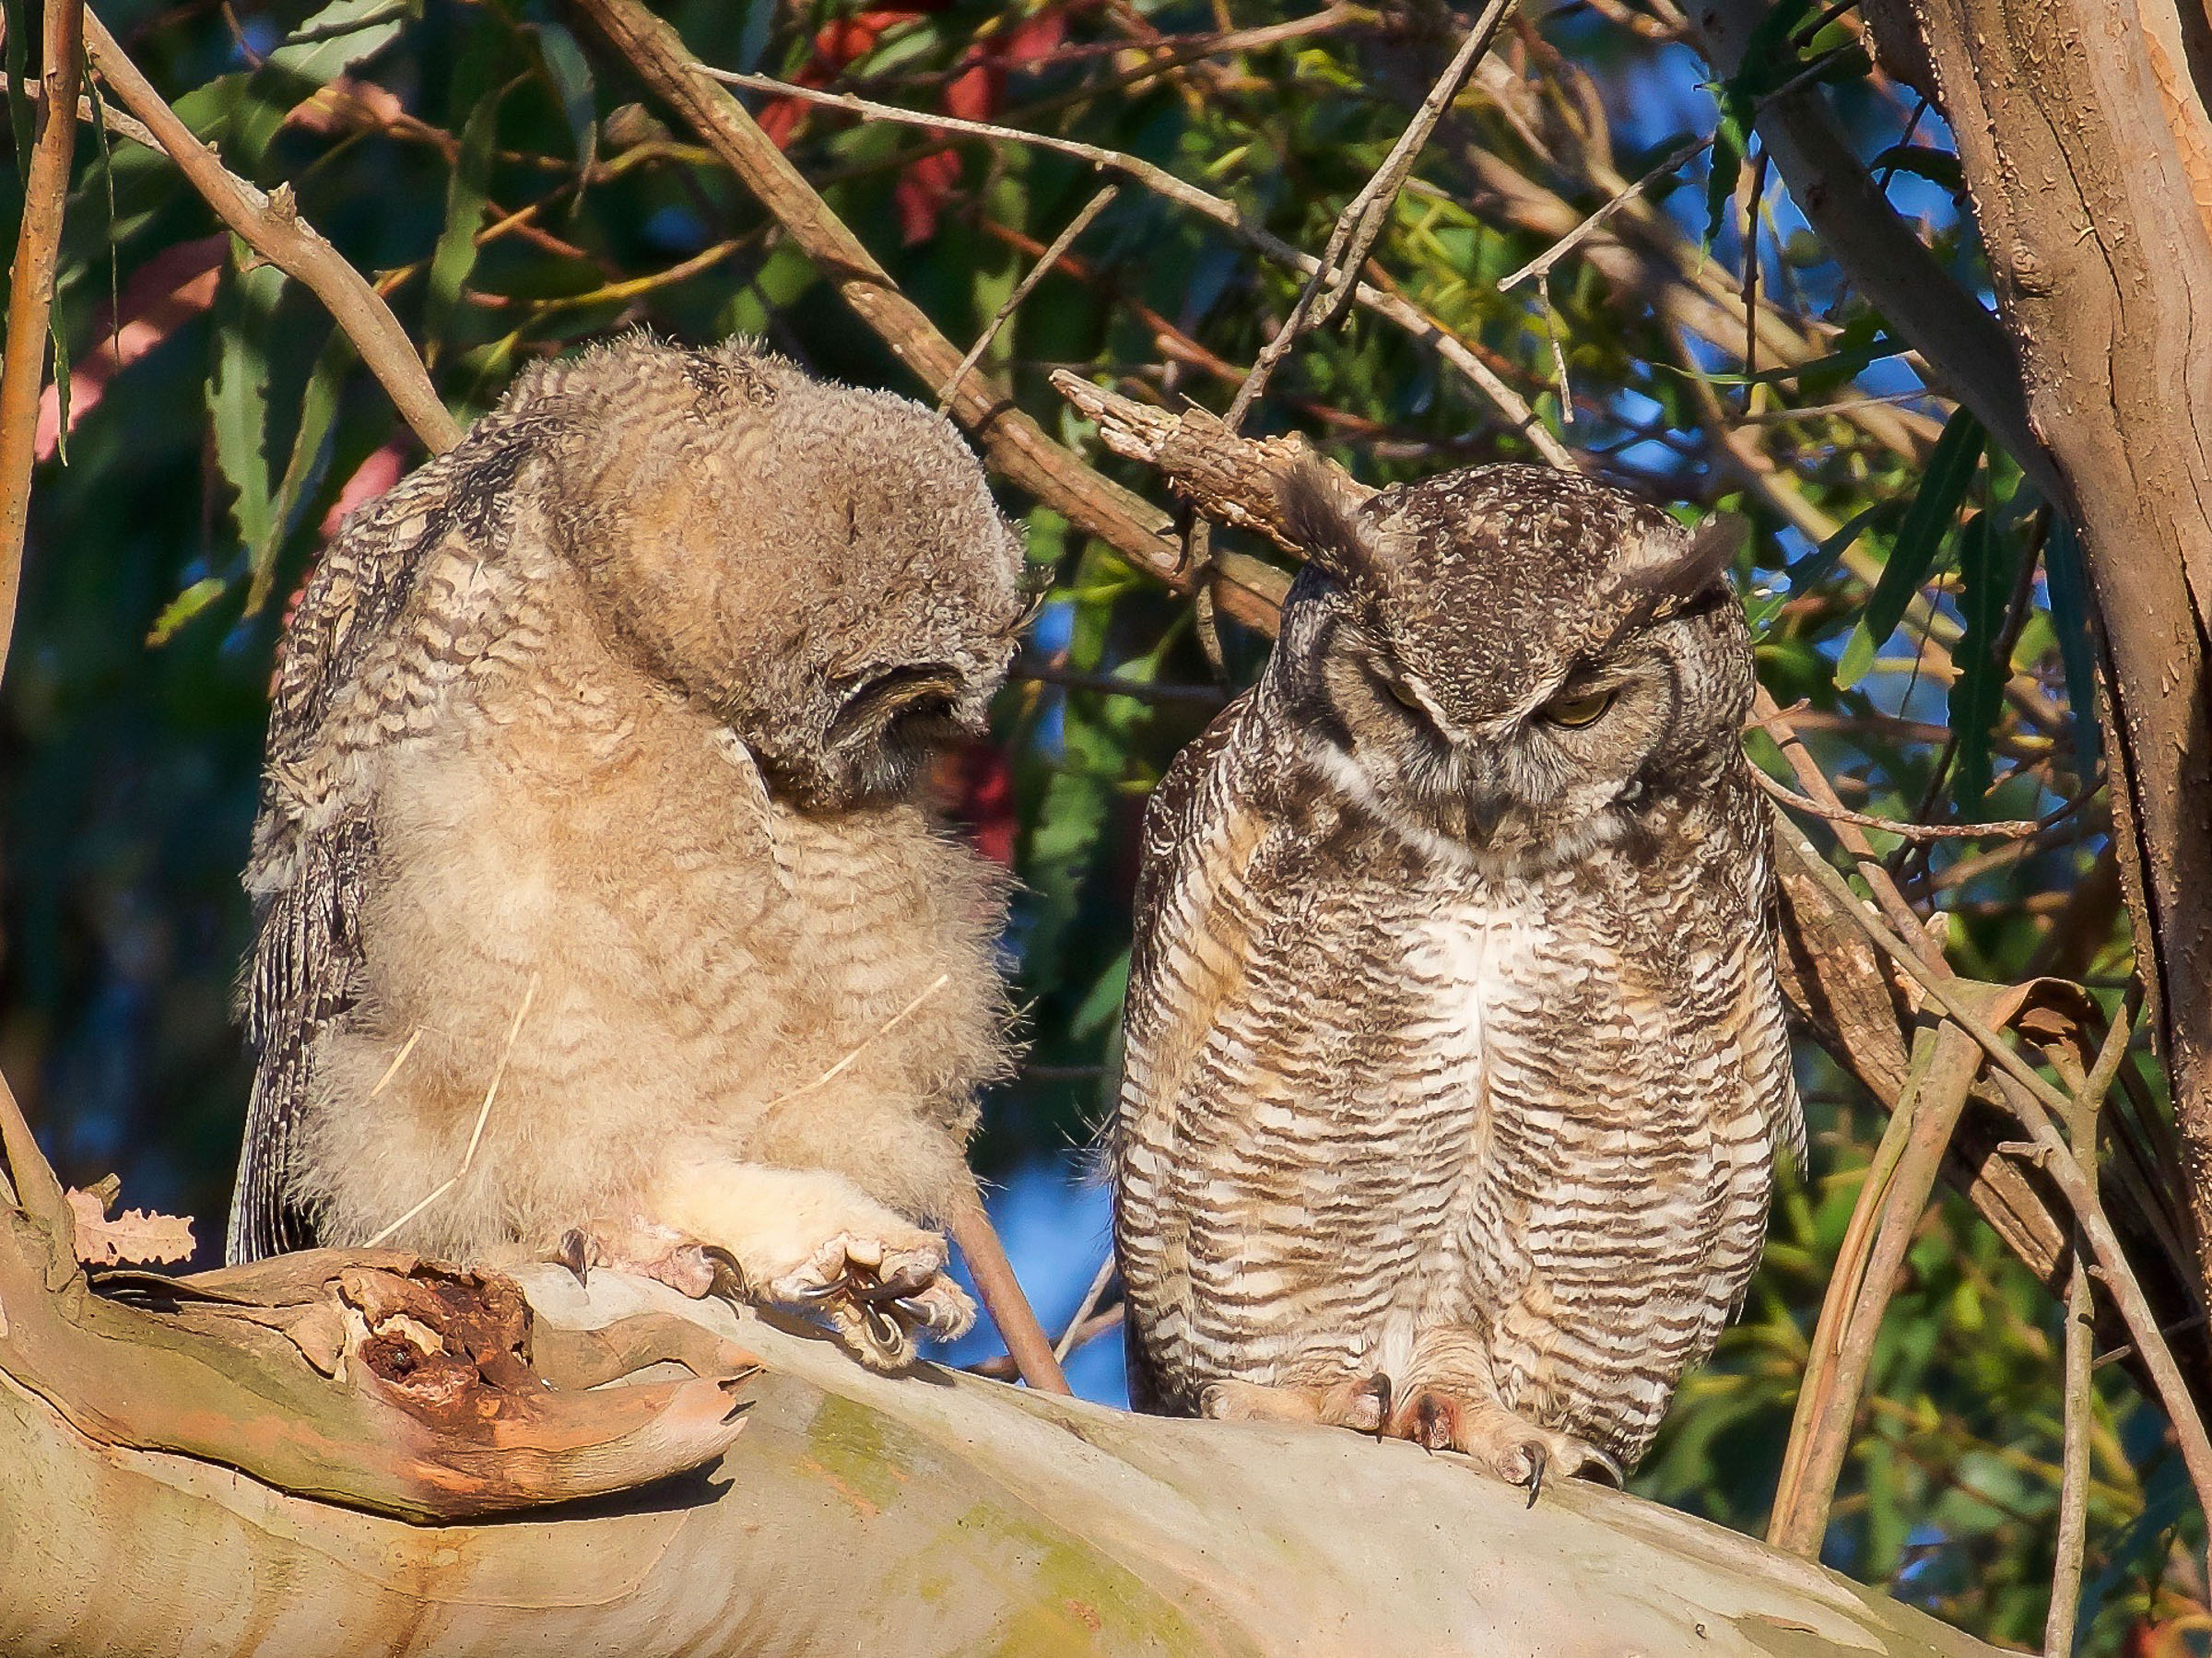 mother-owl-and-owlet-on-branch-grooming-6.jpg